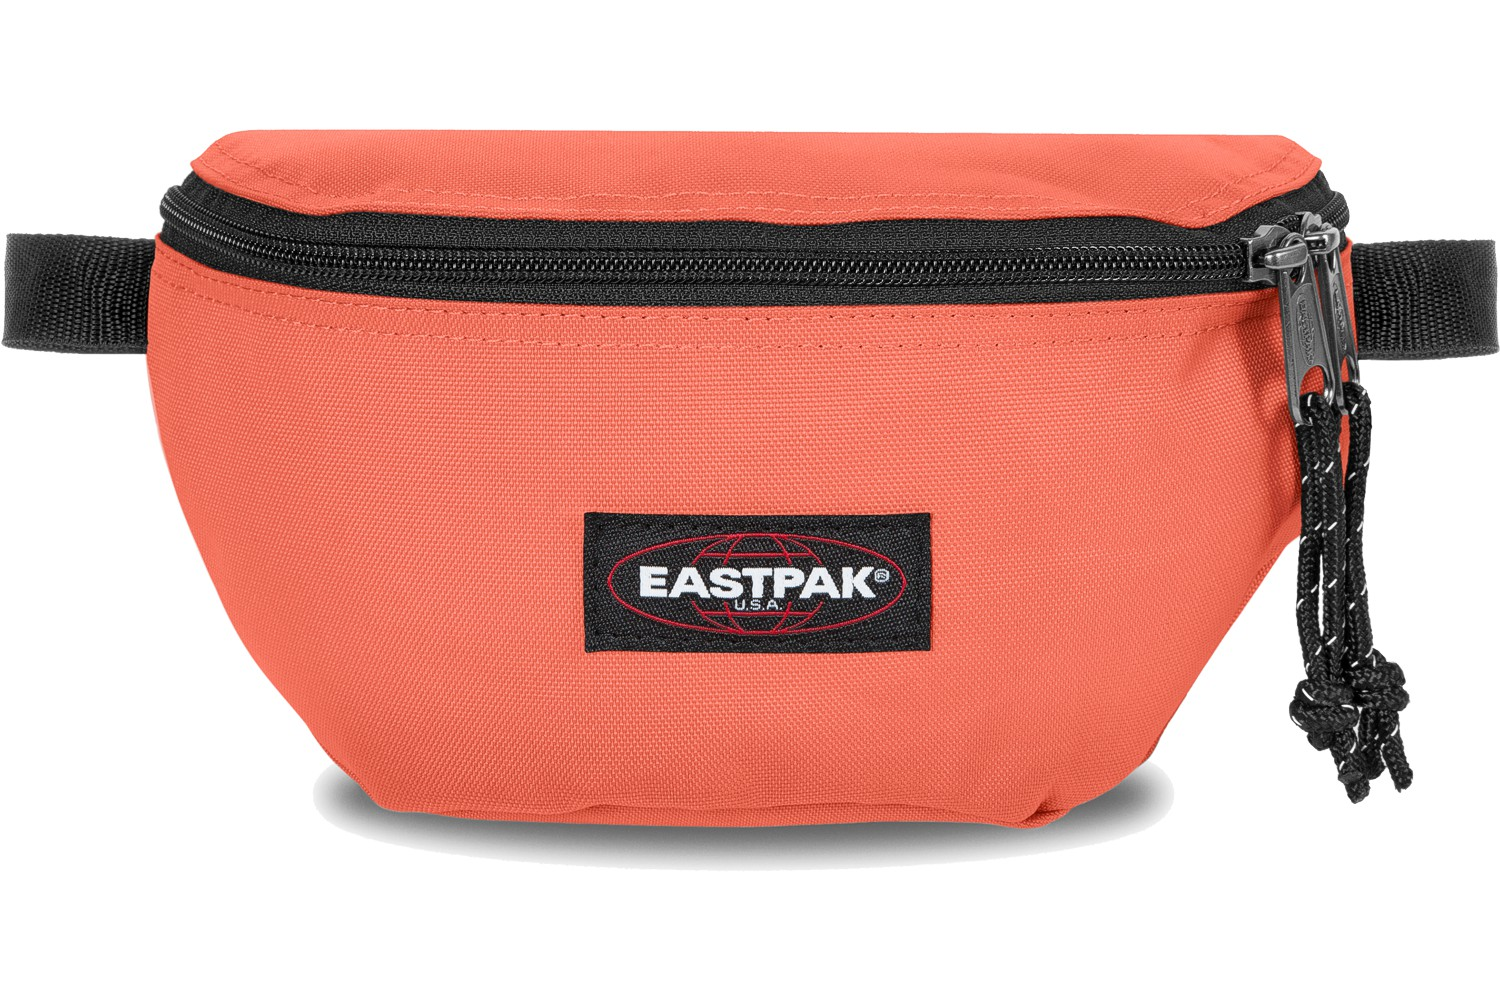 Eastpak Bauchtasche »Springer« Lobster Orange